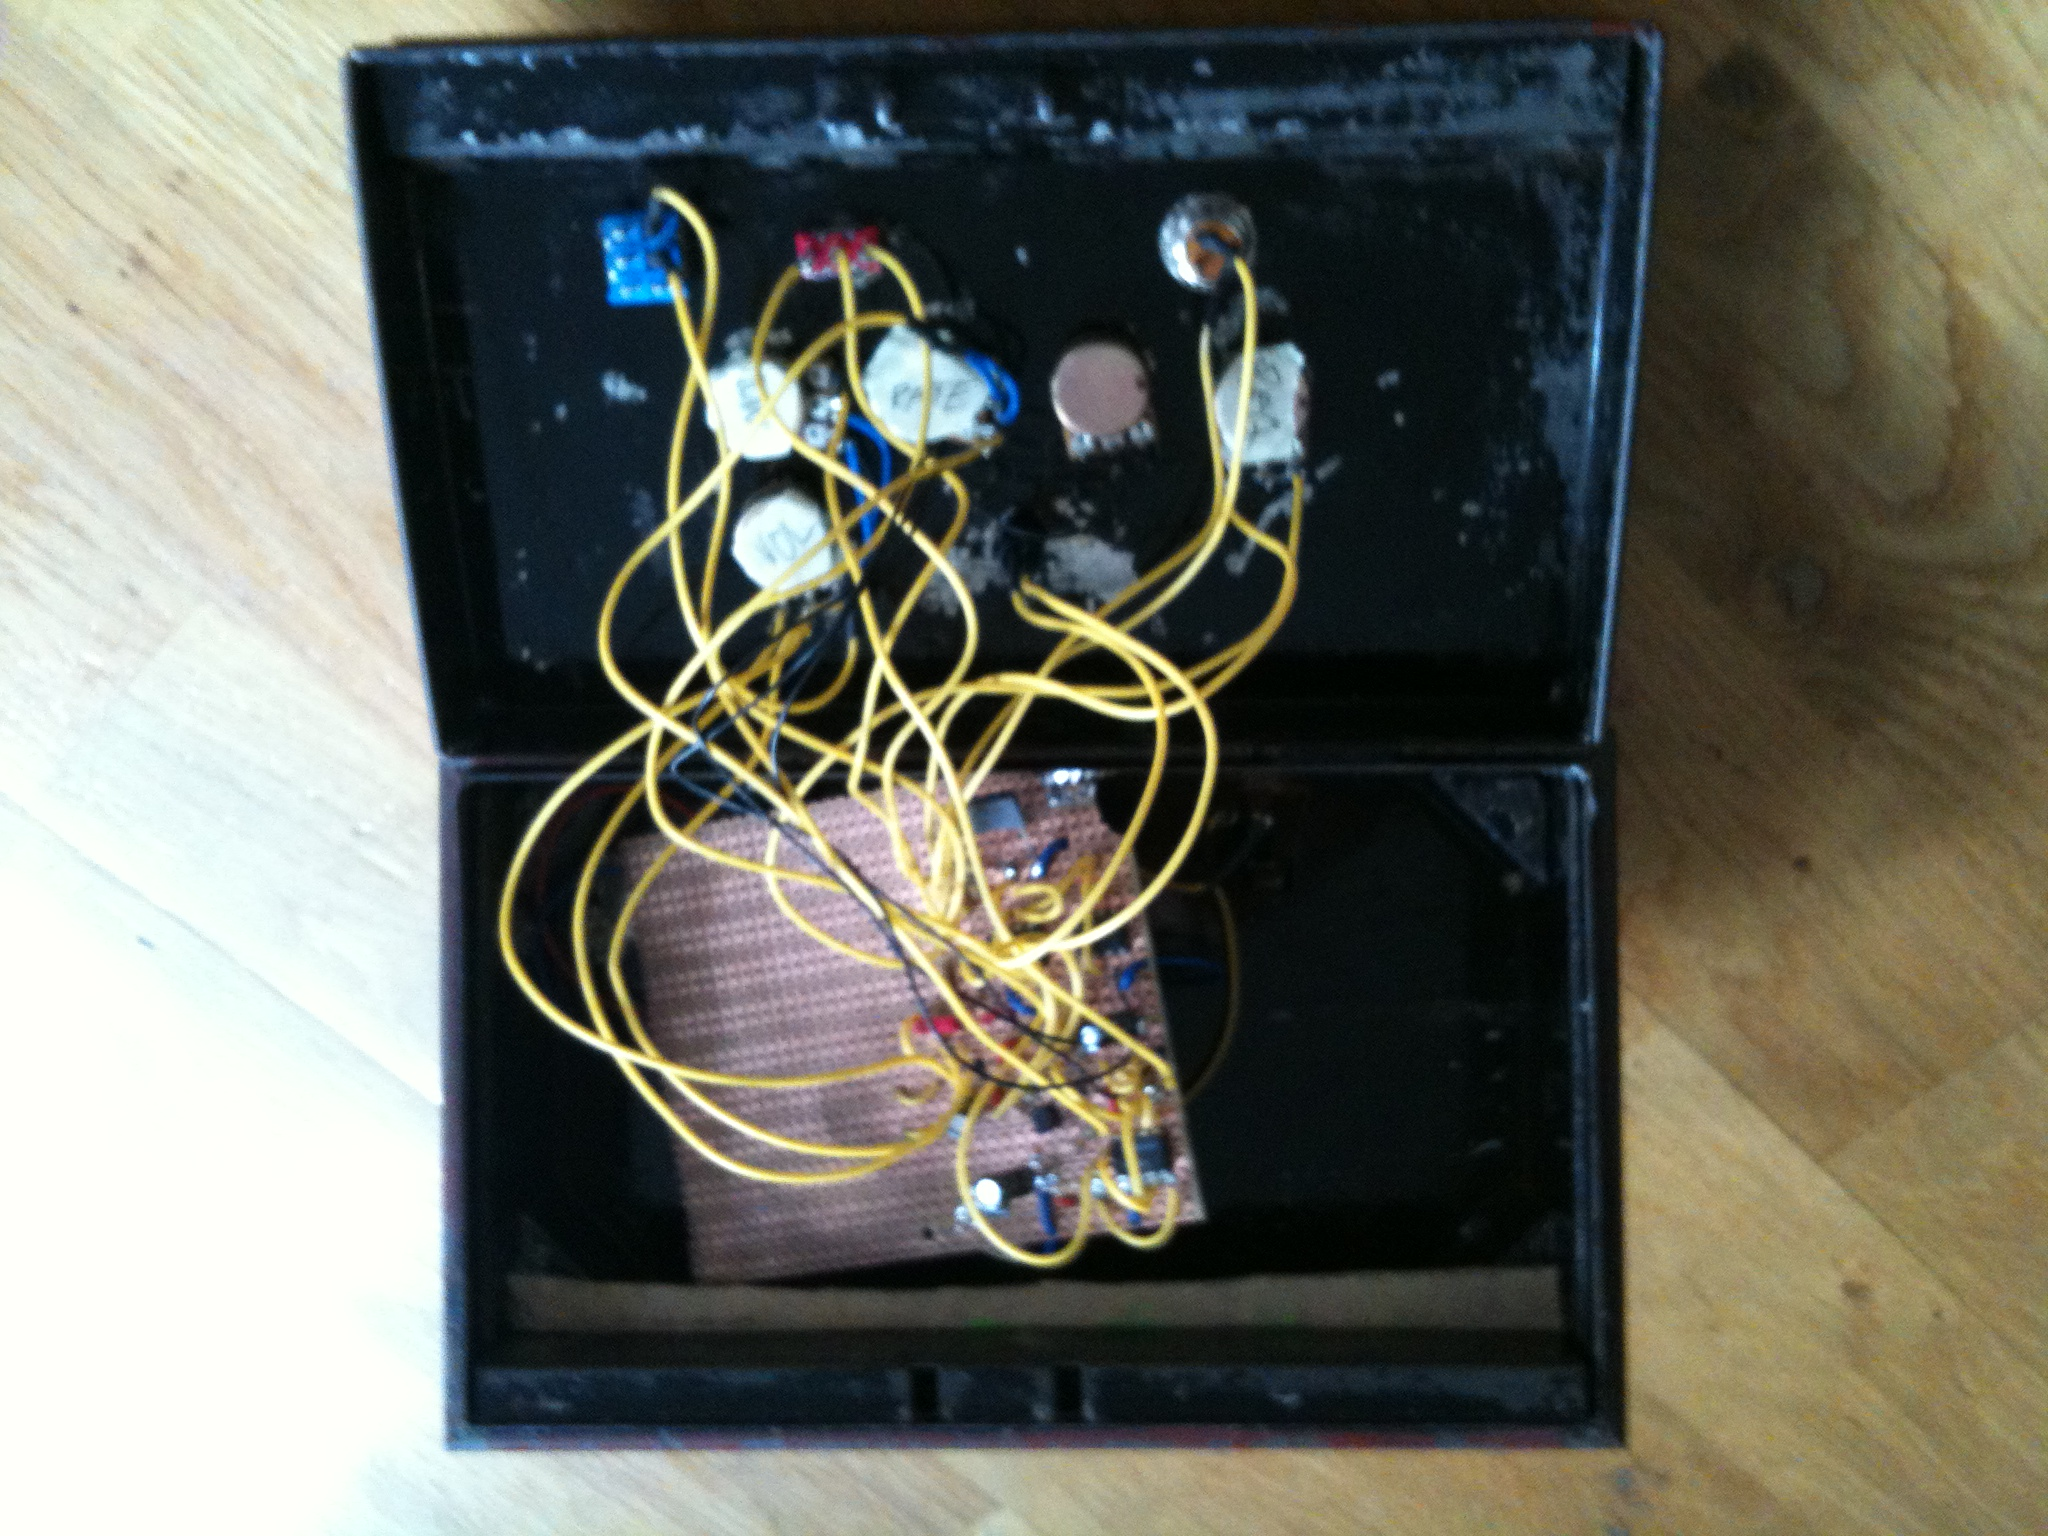 How To Make Your Own Diy Dub Siren Wiring Guitar Jack Socket Inside The Box A Mess